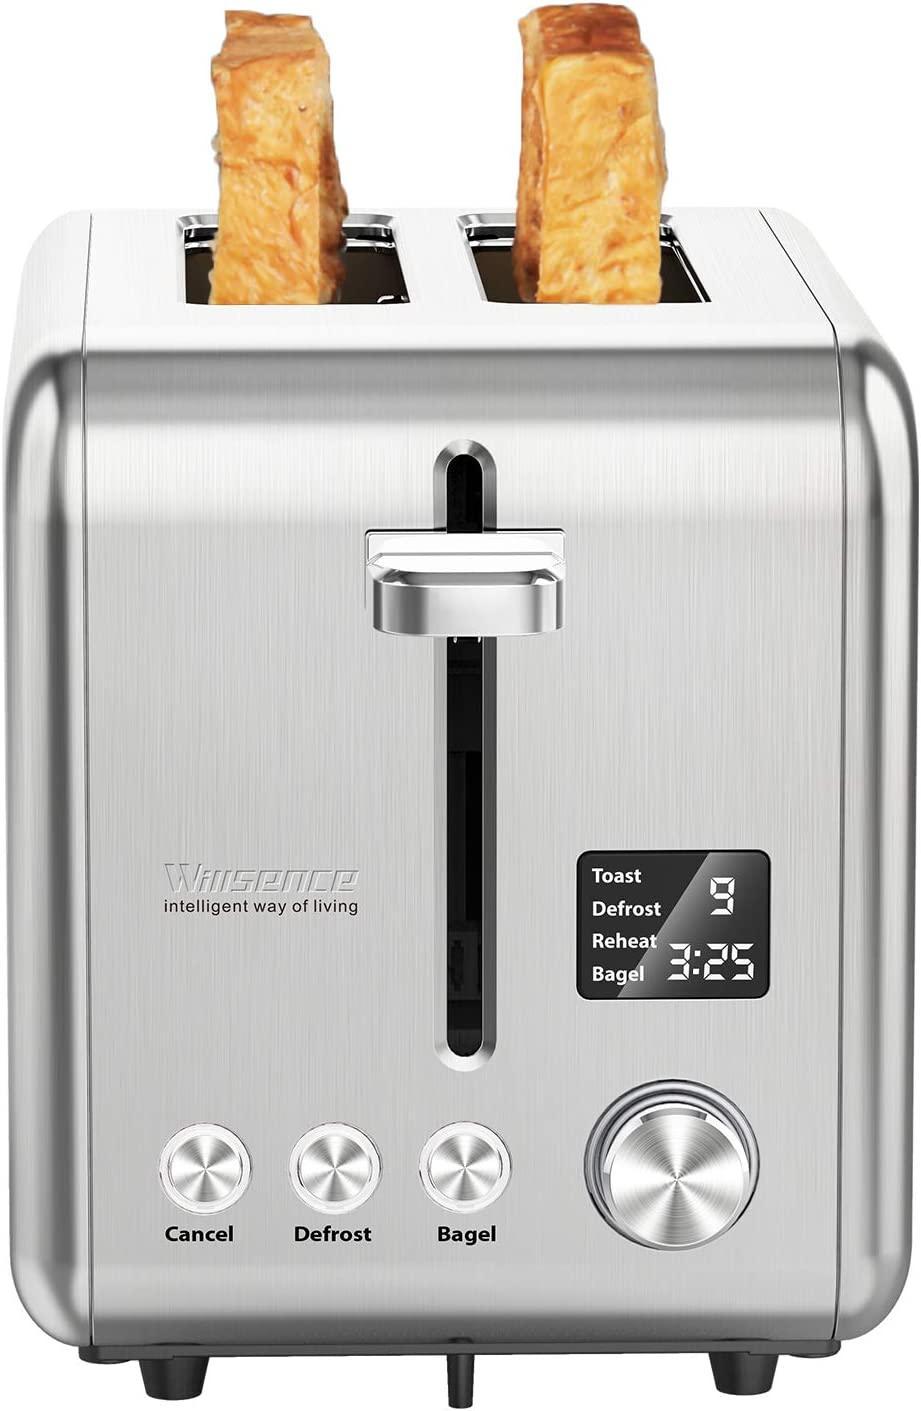 Willsence 2 Slice Toaster Stainless Steel with Digital LCD Display, 9 Bread Shade Settings and 6 Pre-set programs Bagel Defrost Reheat Cancel Function, Extra Wide Slots, Removable Crumb Tray, 900W Silver